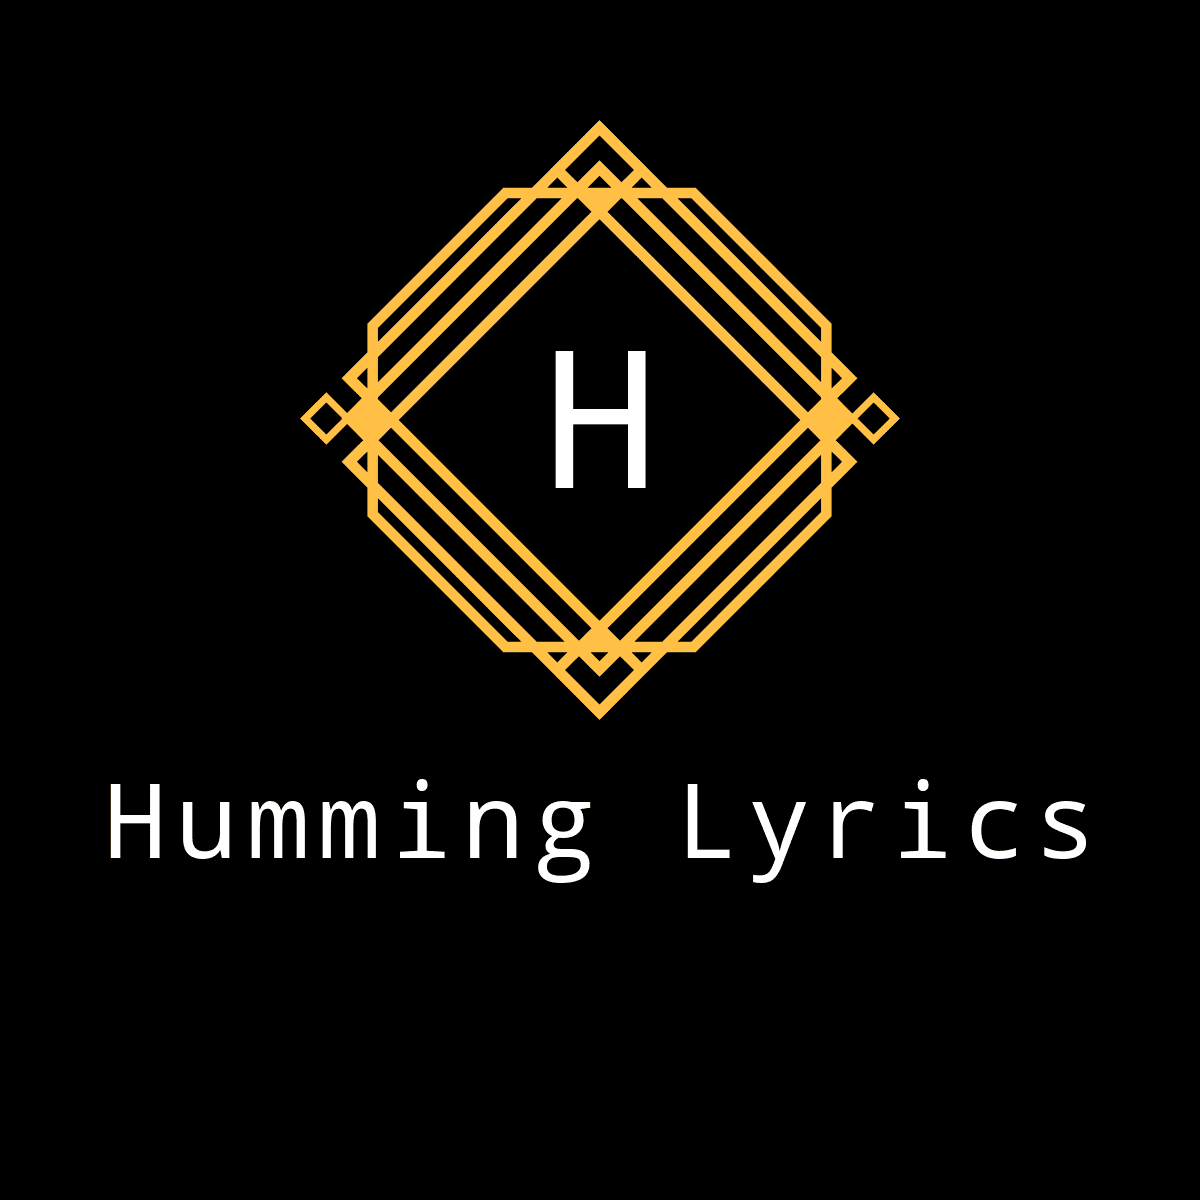 Humming Lyrics